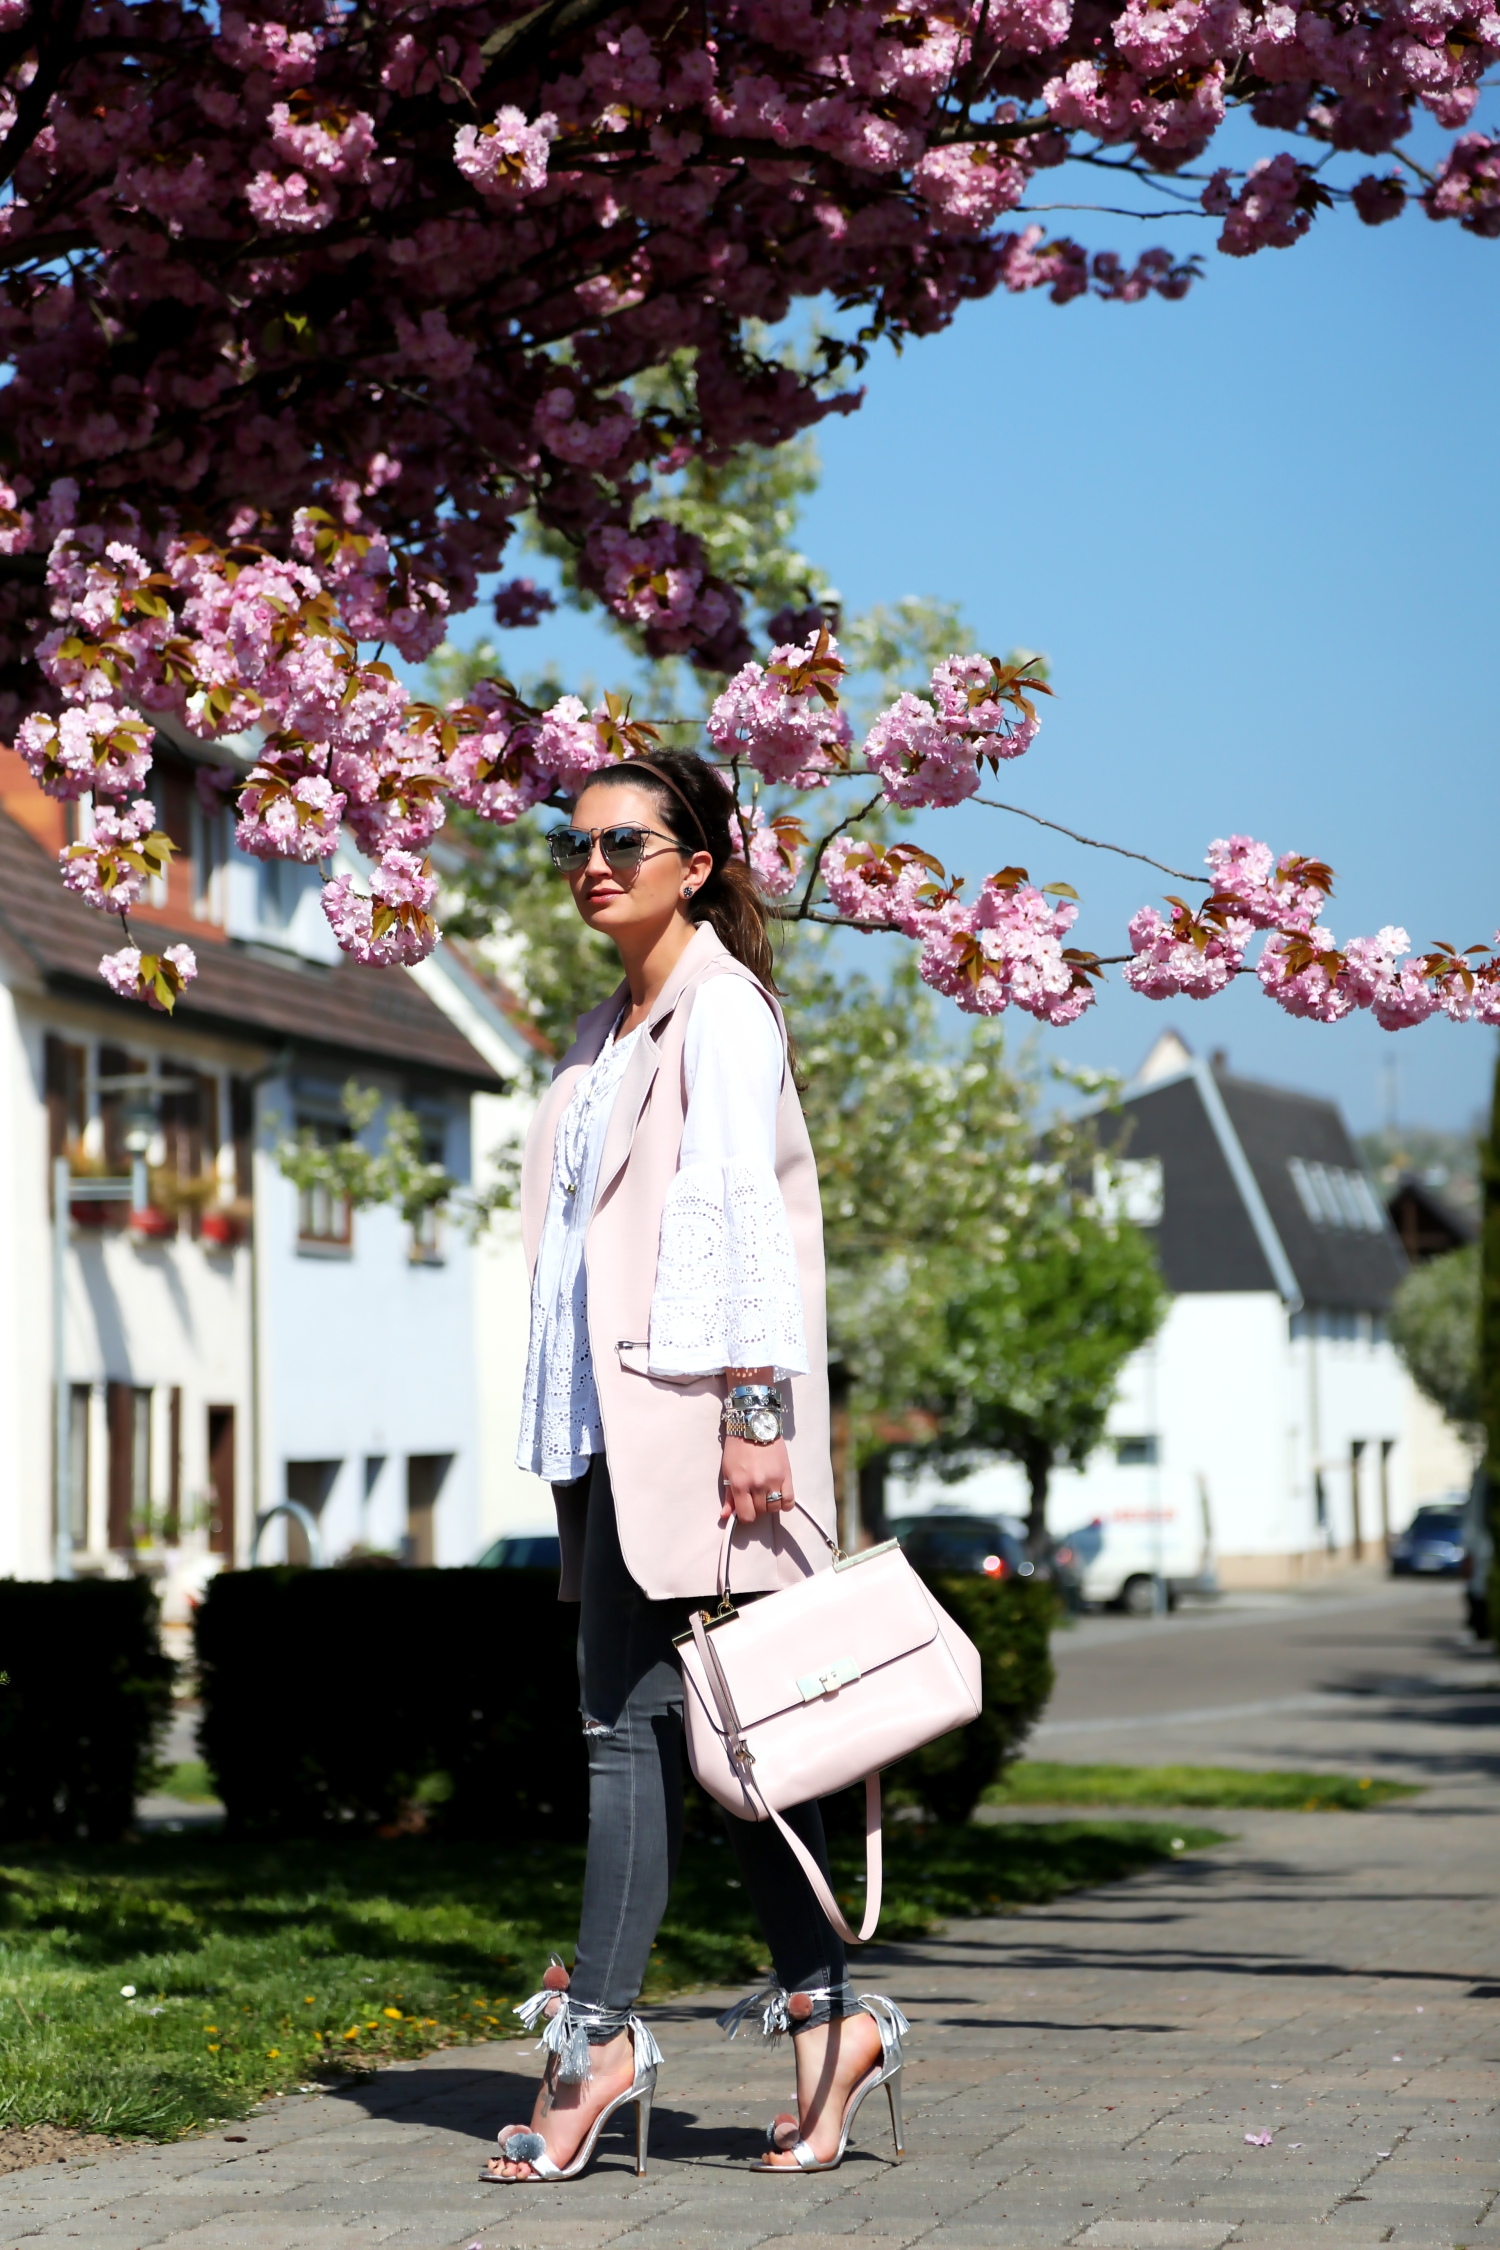 outfit-spring-frühjahr-fashionblogger-pastel-colors-cherry-blossom-tree